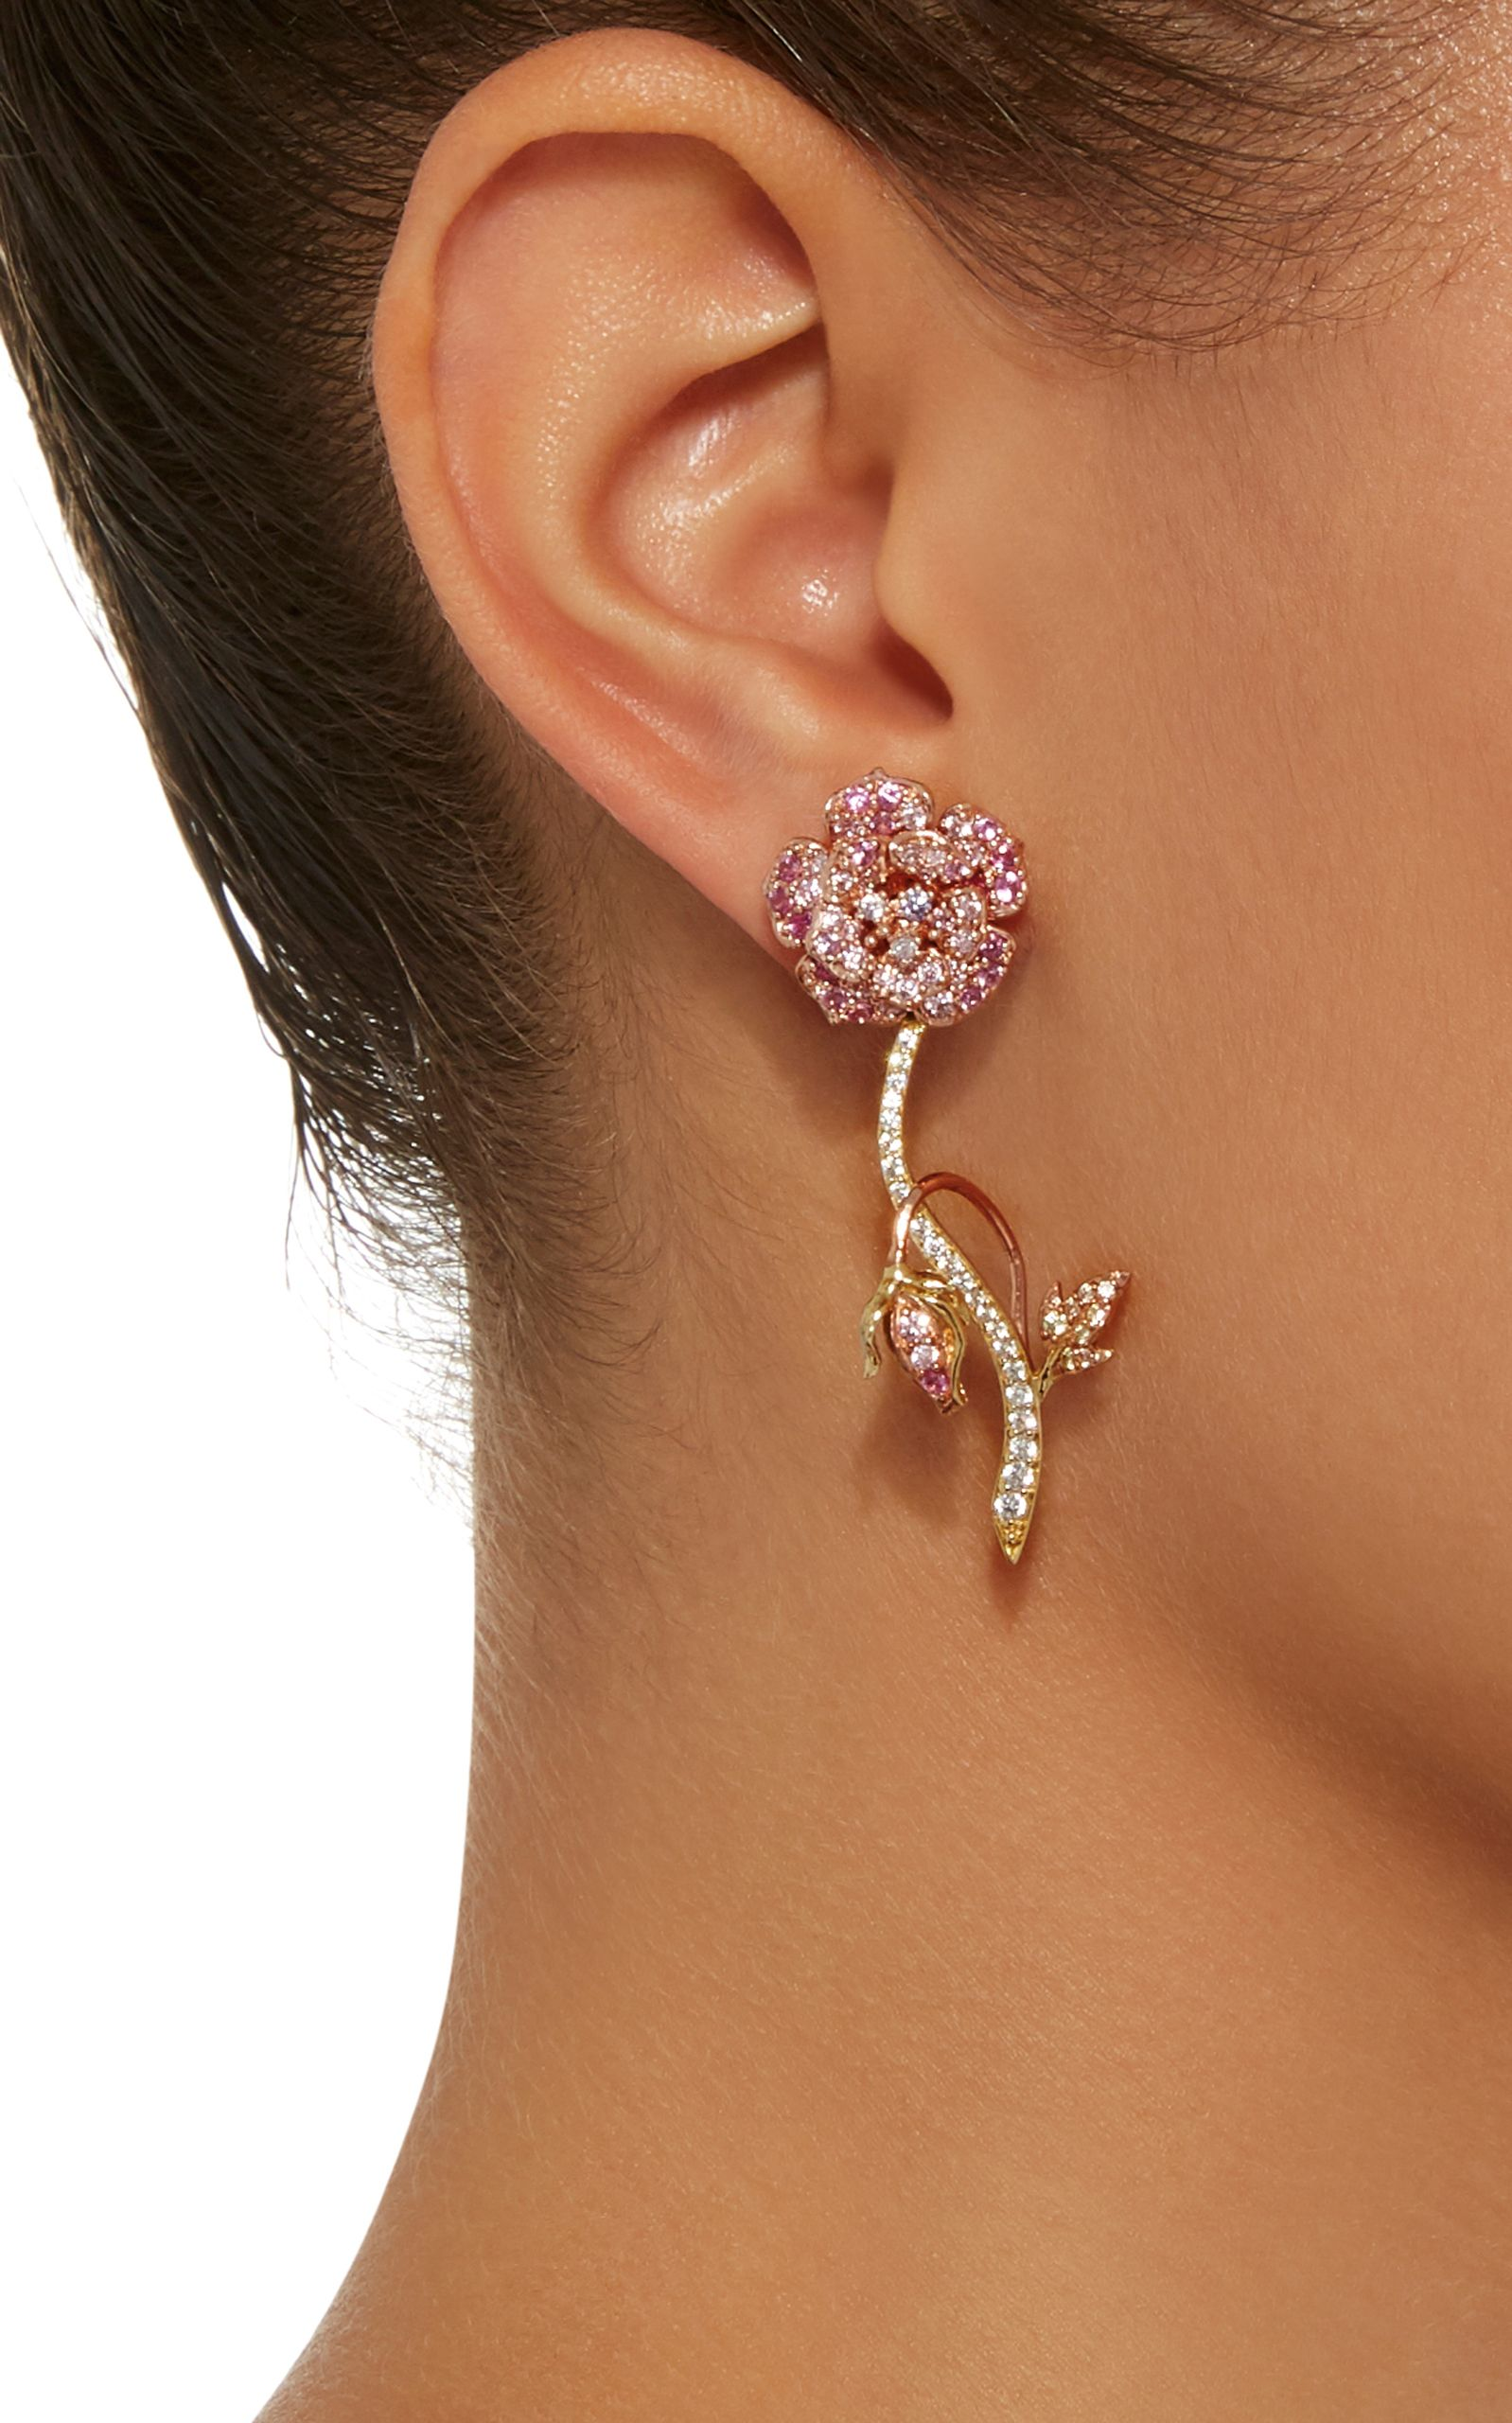 home cuffs fine diamond and cts celestial ear cuff daisy gems all graziela jewelry product jacket